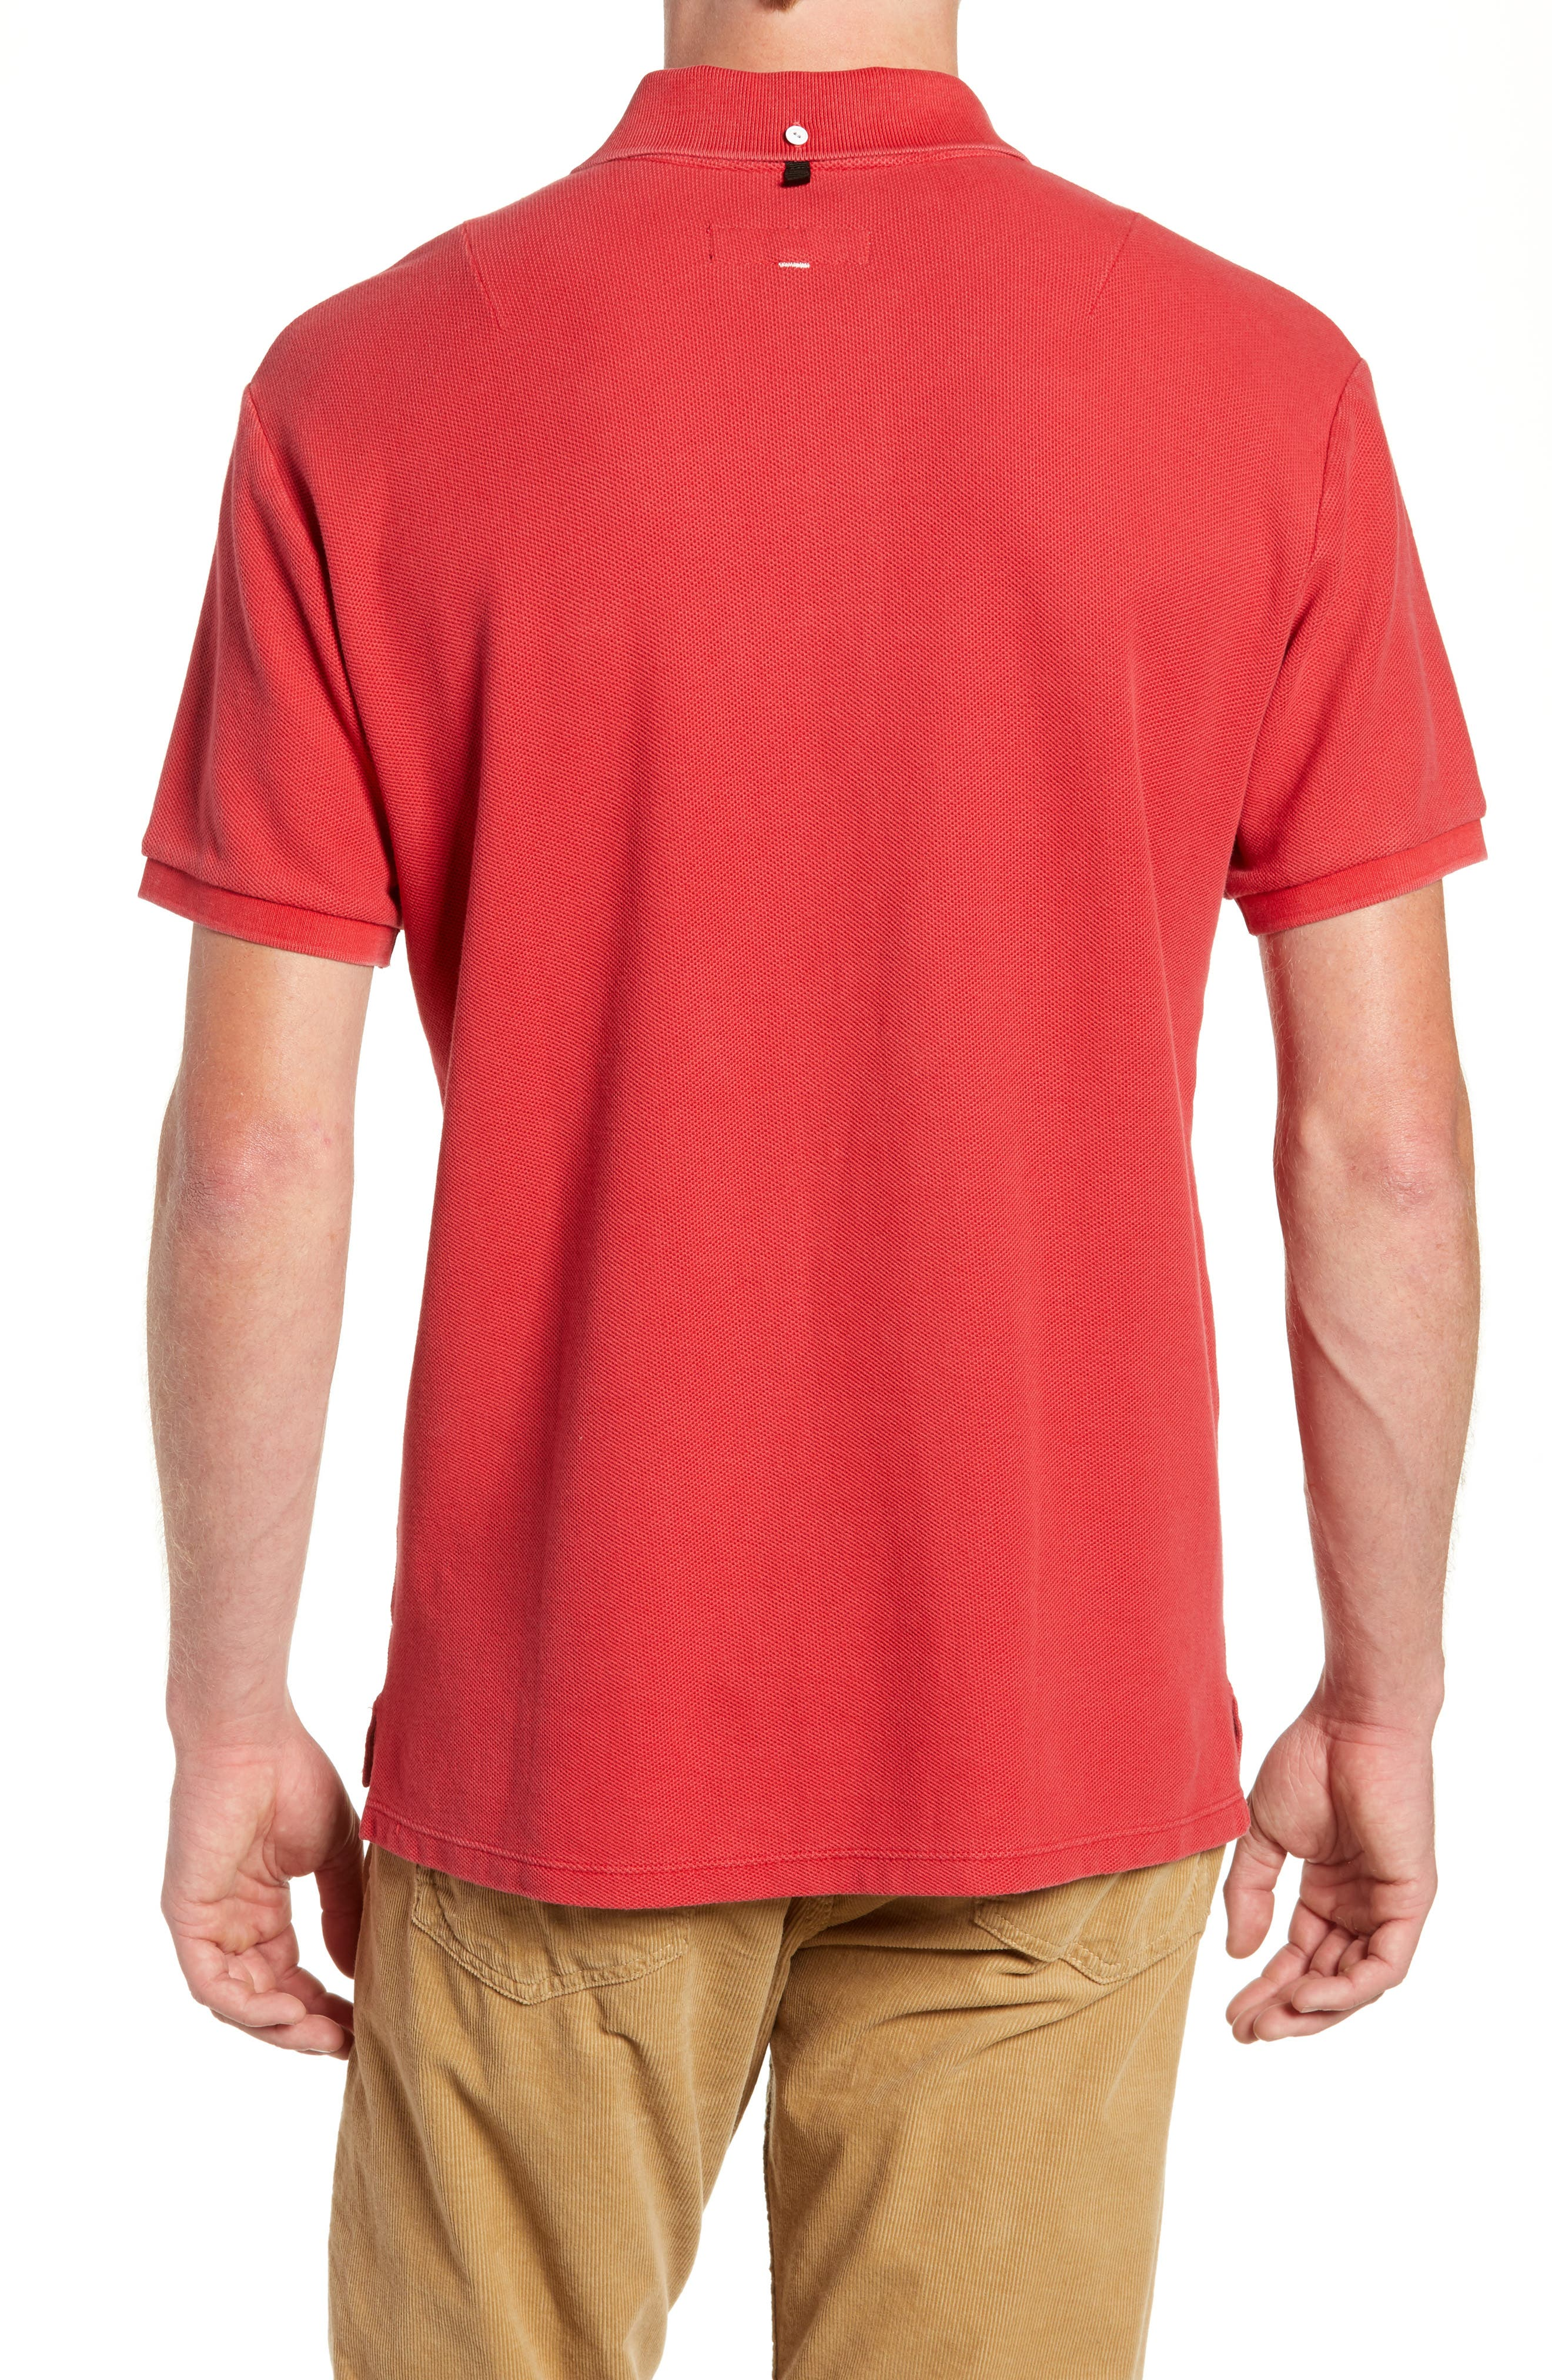 Mens Yellow Polo Shirts Nordstrom